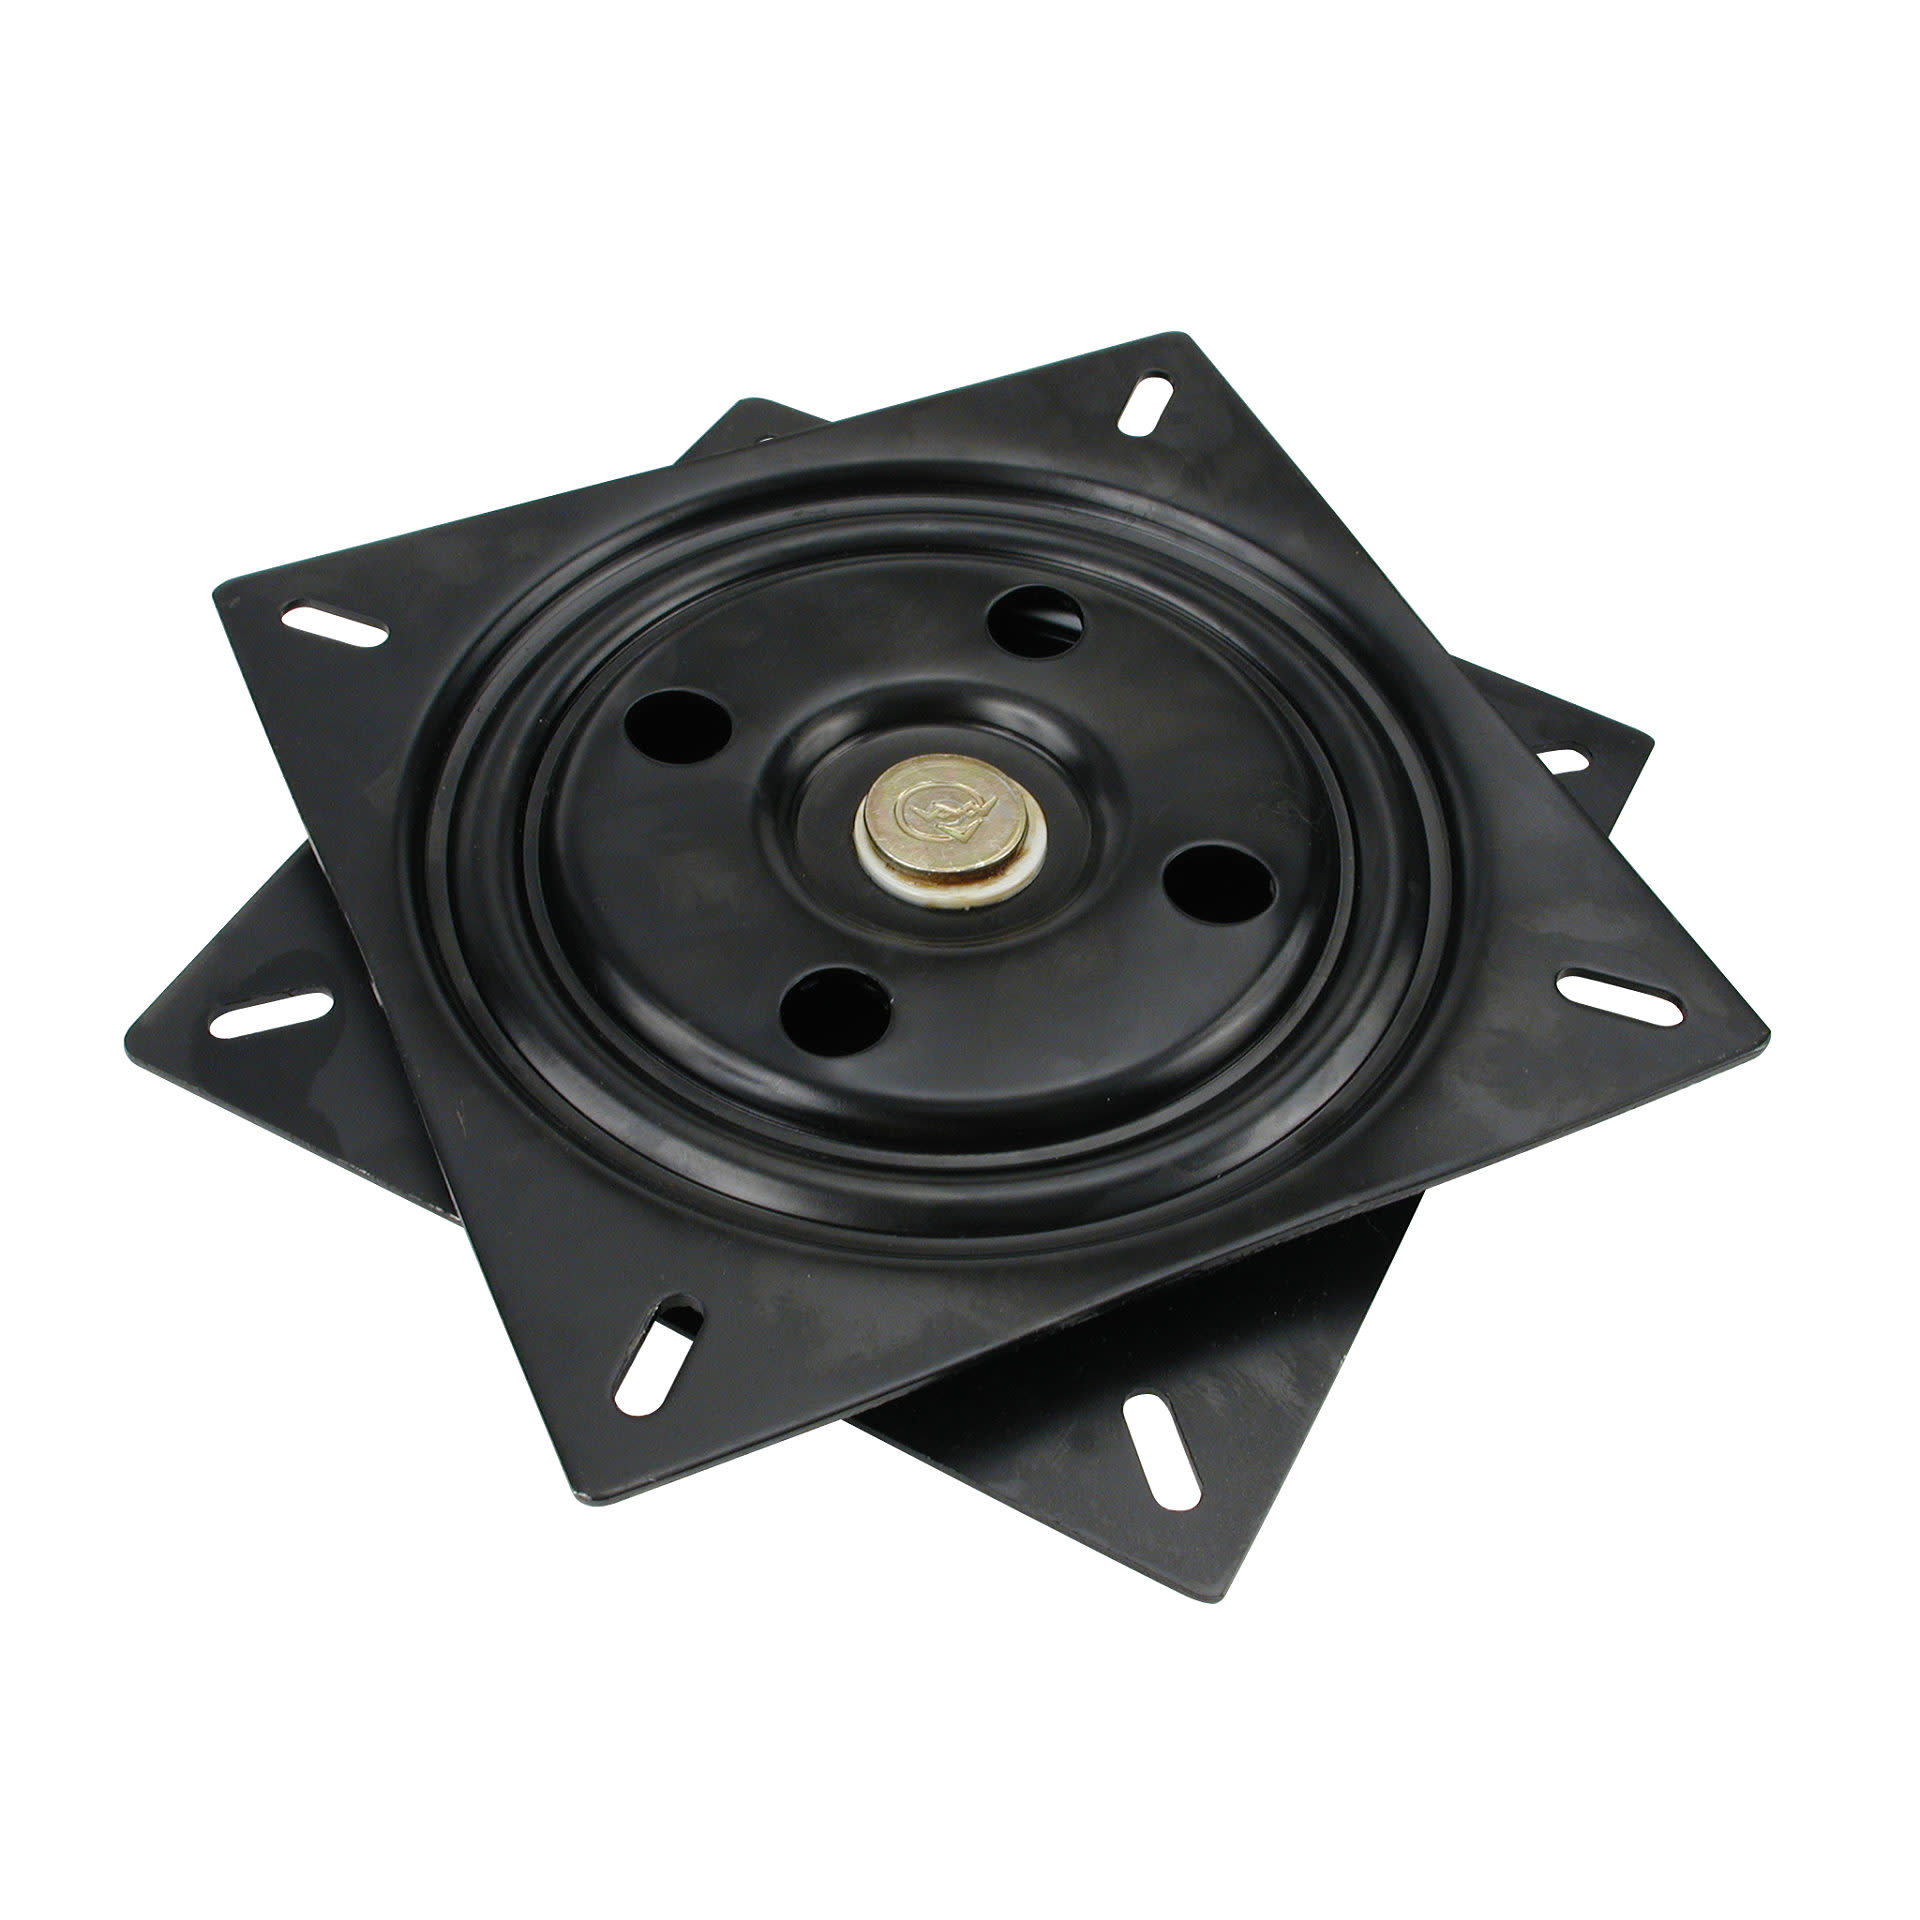 Richelieu Uc Black 7 11 16 Square Swivel Plate With